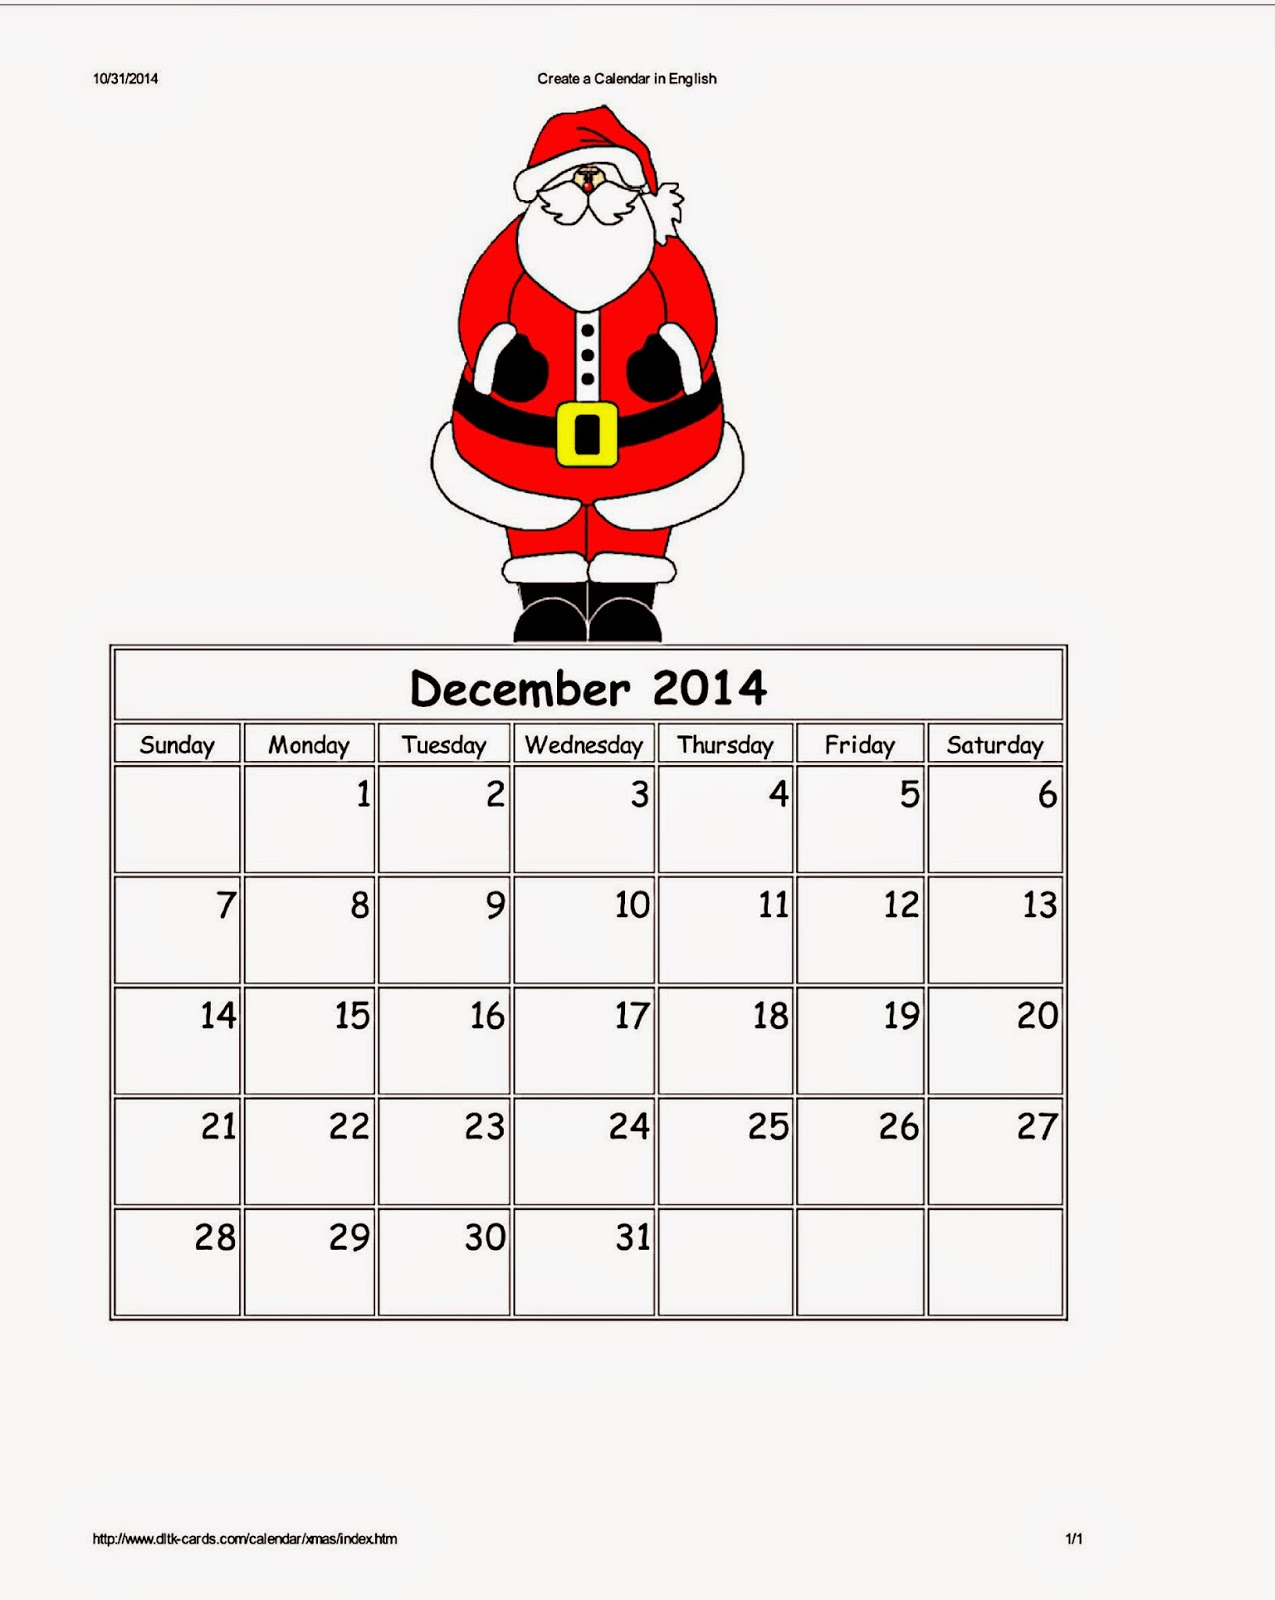 DLTK's Santa Holiday Calendar For December 2014